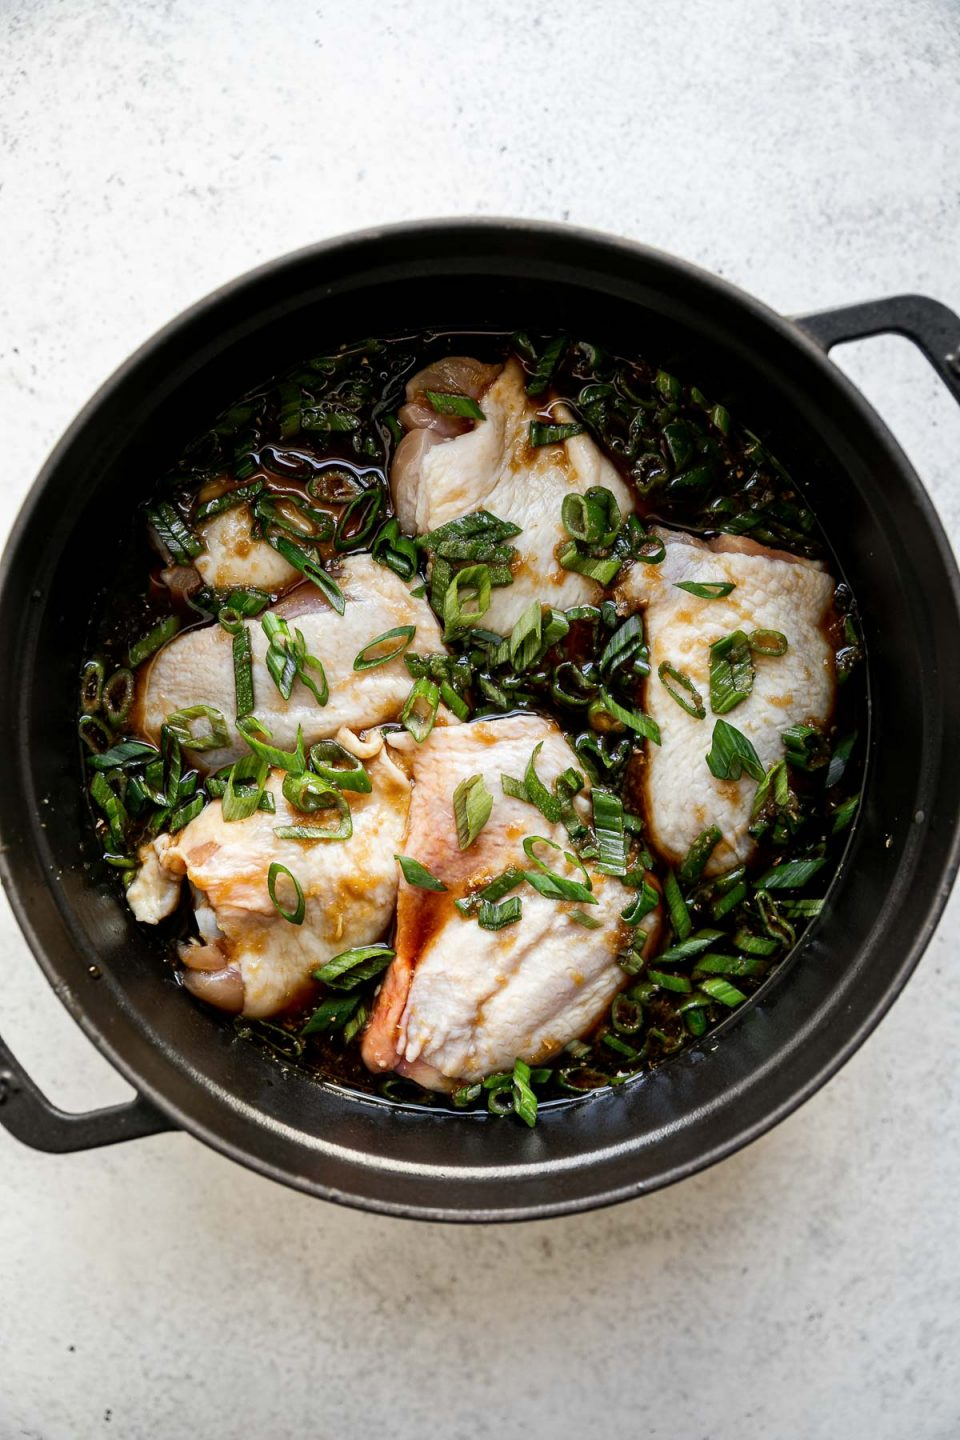 Shoyu chicken assembled in a black dutch oven before braising. The dutch oven sits atop a white surface.